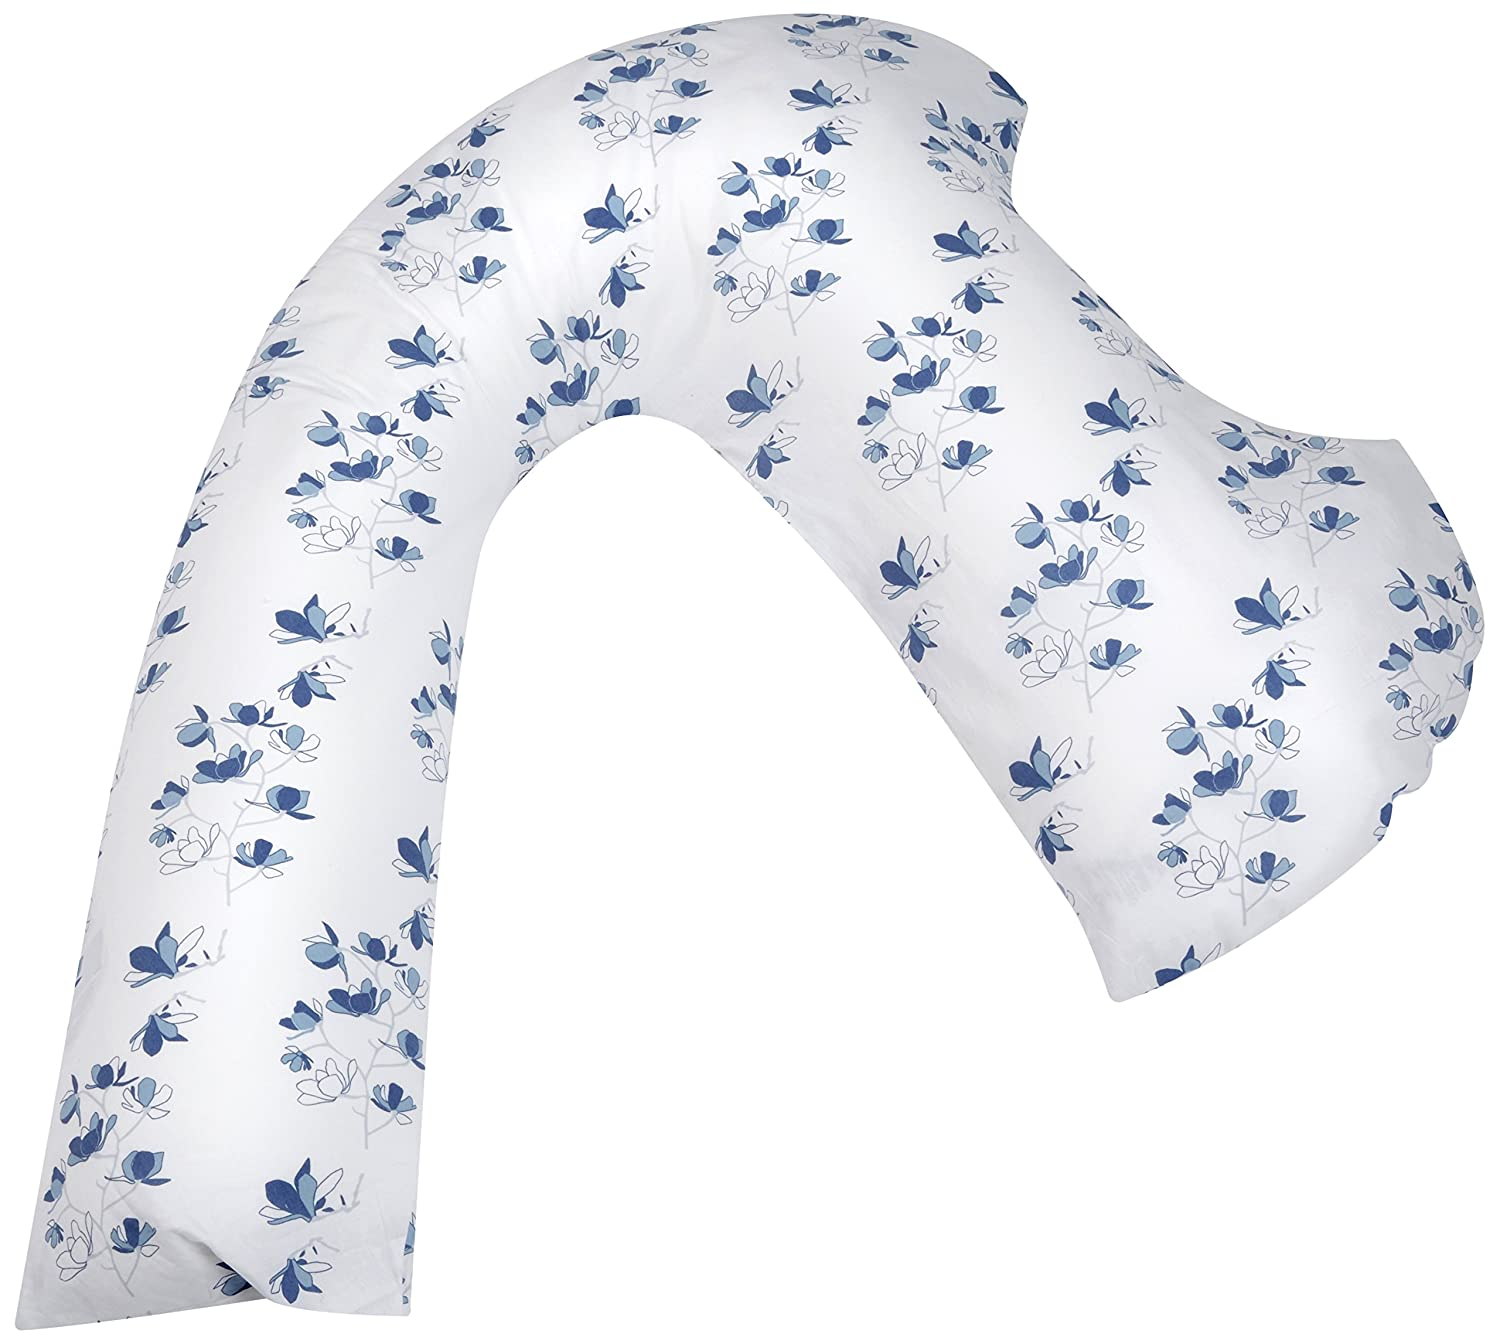 DreamGenii Spare Pillow Cover for Dreamgenii Pregnancy Pillow (Blue Oriental Blossom)